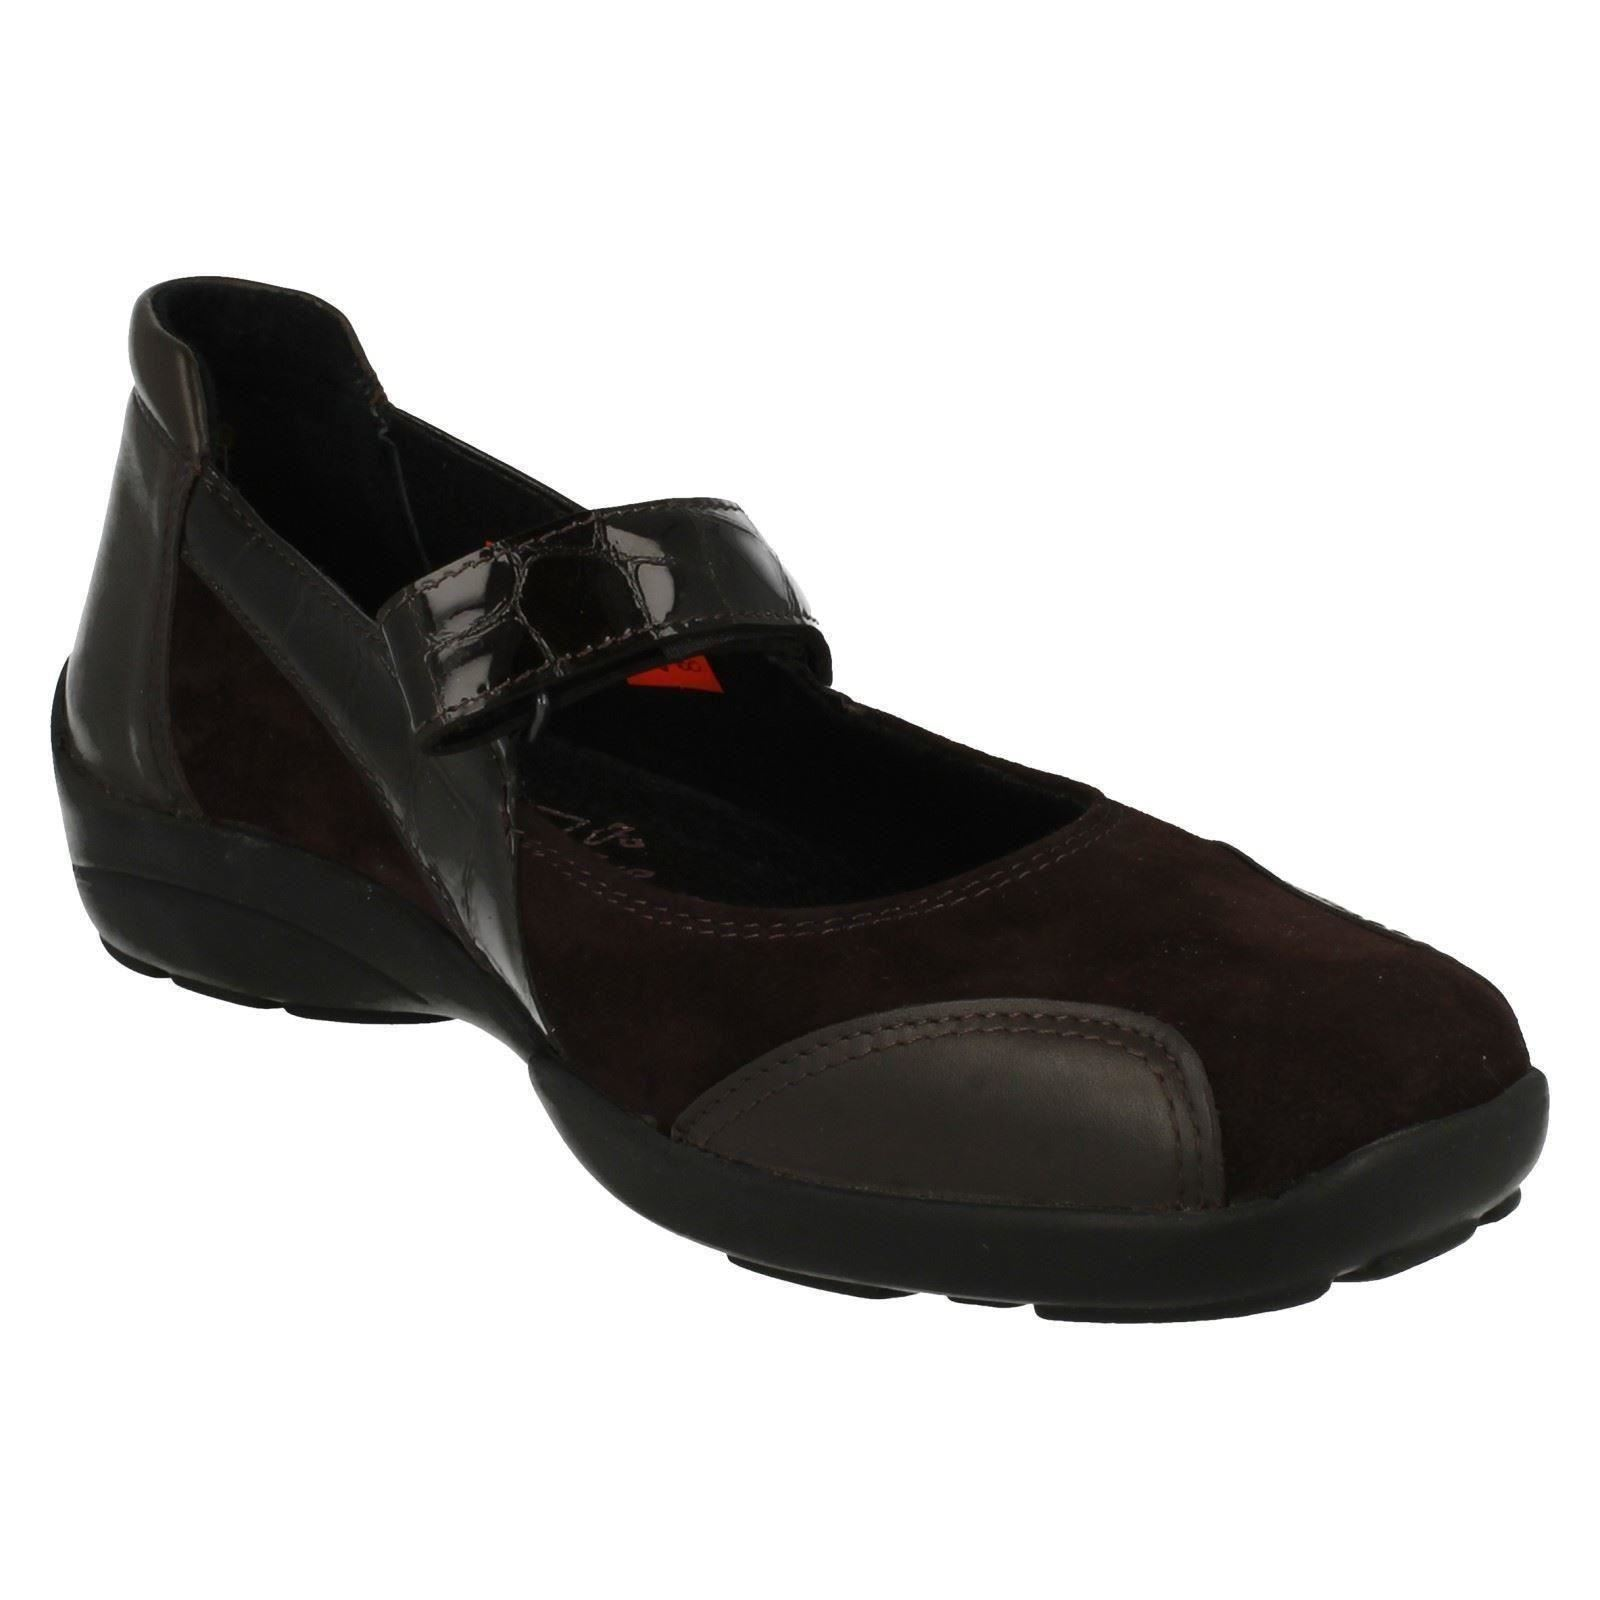 "Ladies Easy B Mary Jane Shoes /""Keighley/"""